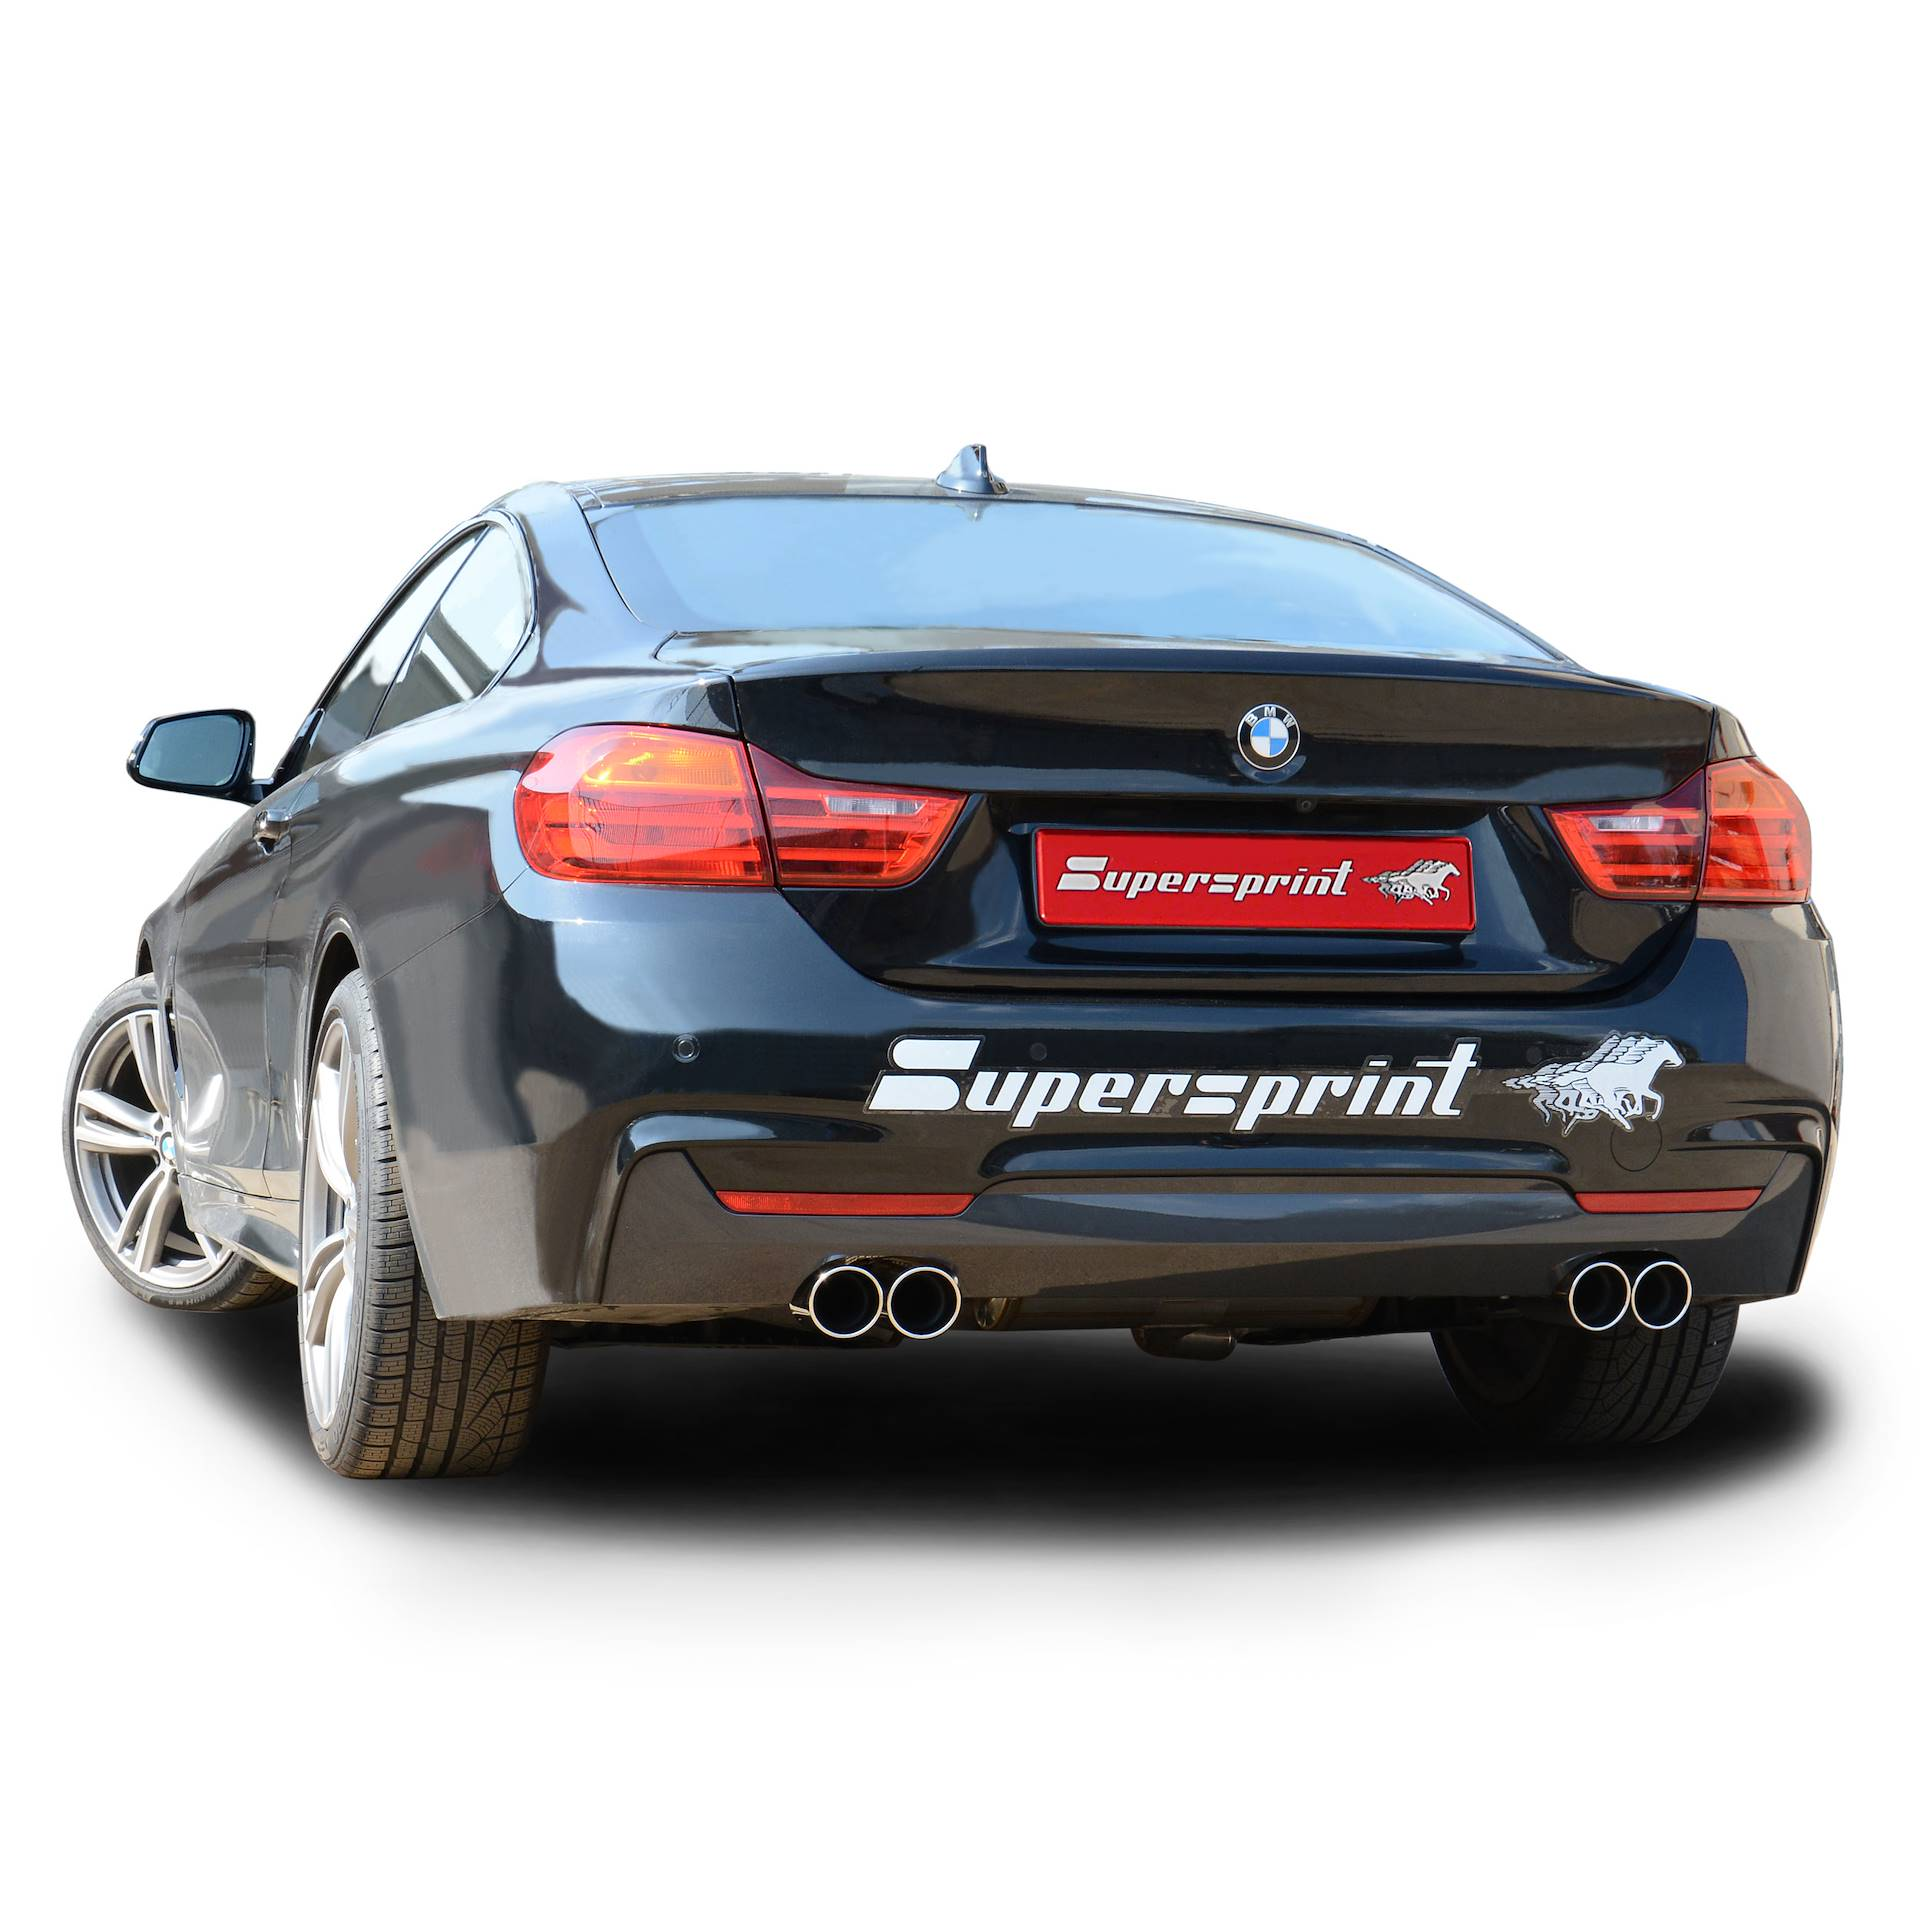 BMW - BMW F32 Coupè 435i xDrive (304 Hp/306 Hp) 2013 ->